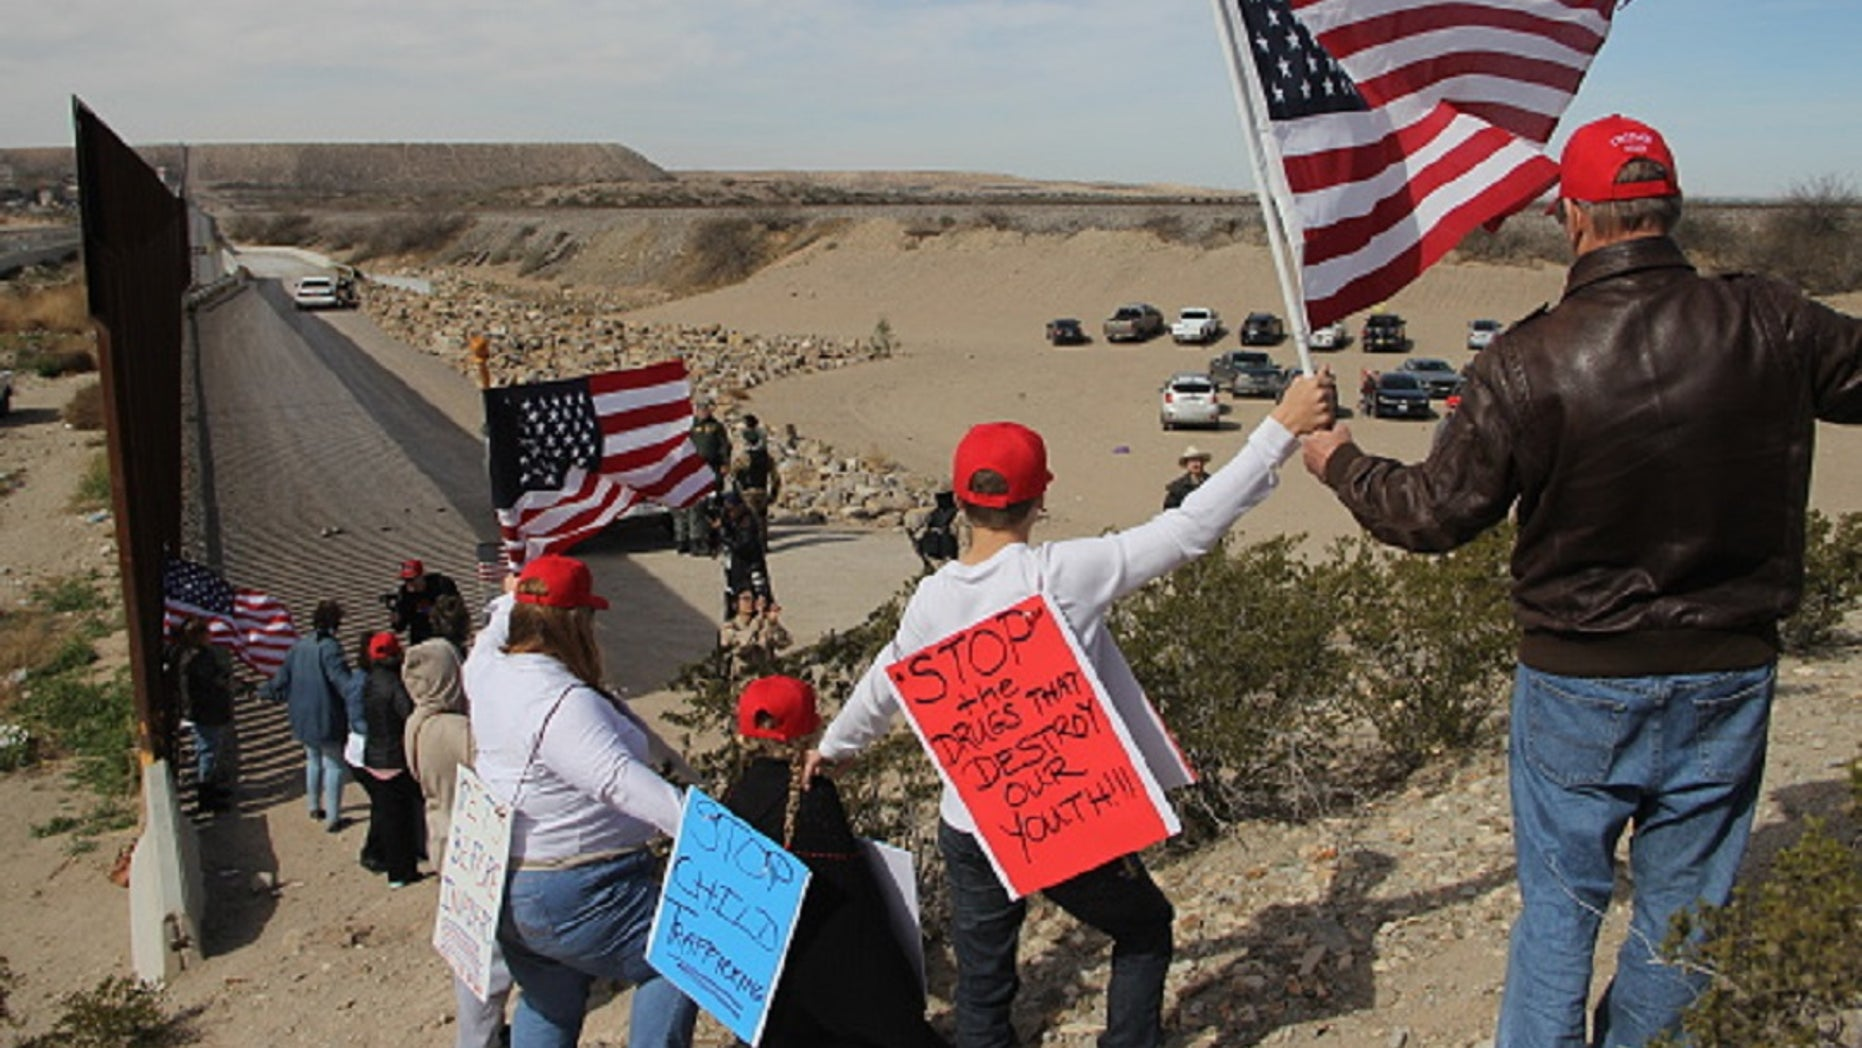 Trump Supporters Form Human 'Wall' Along U.S.-Mexico Border